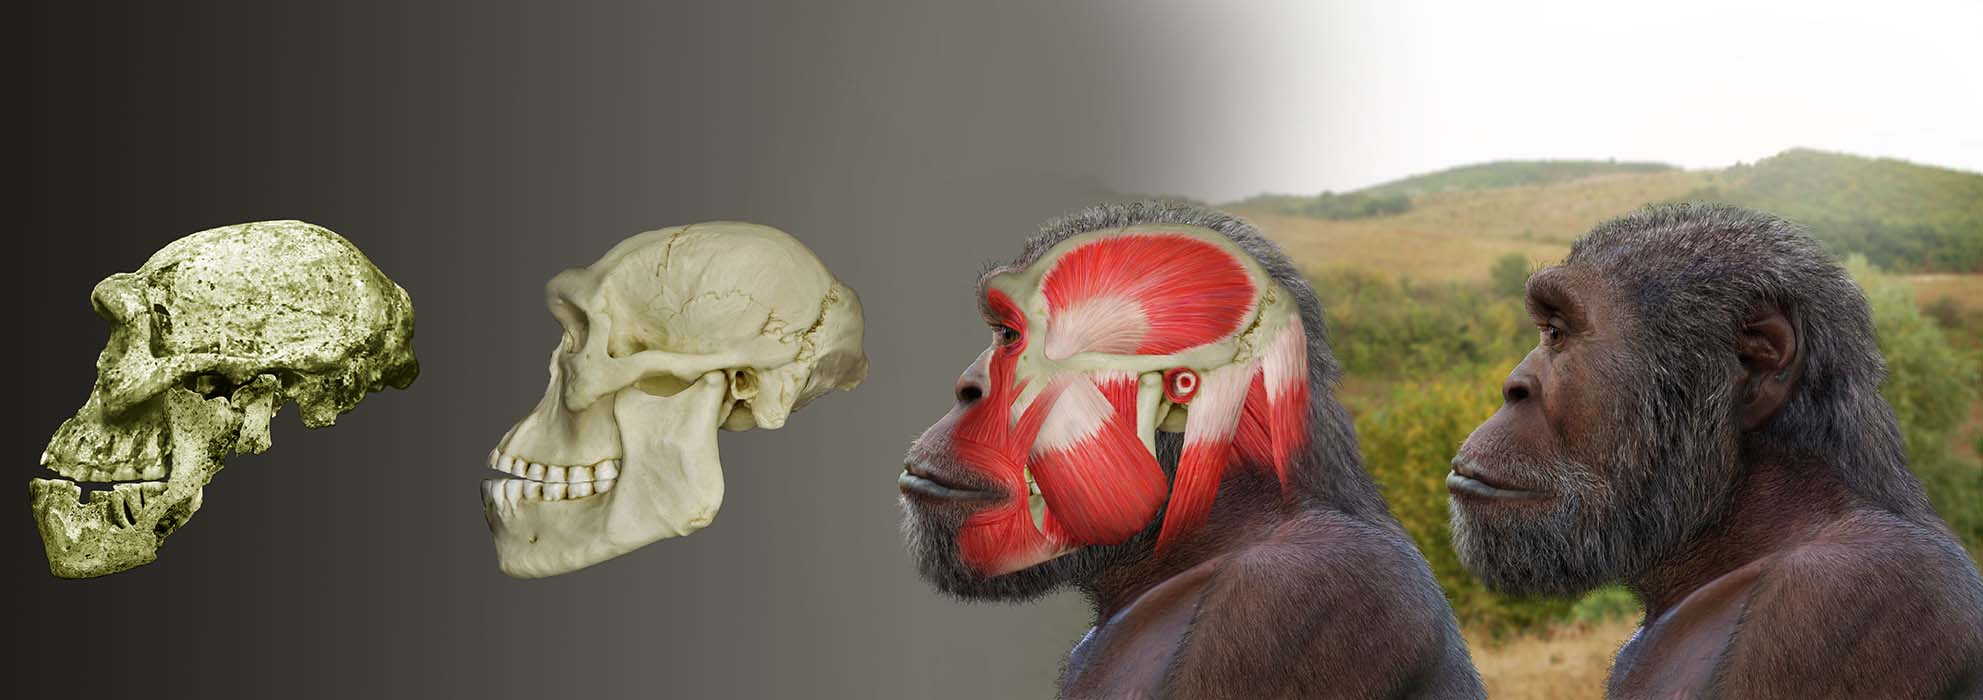 Dmanisi5_head_restorationn